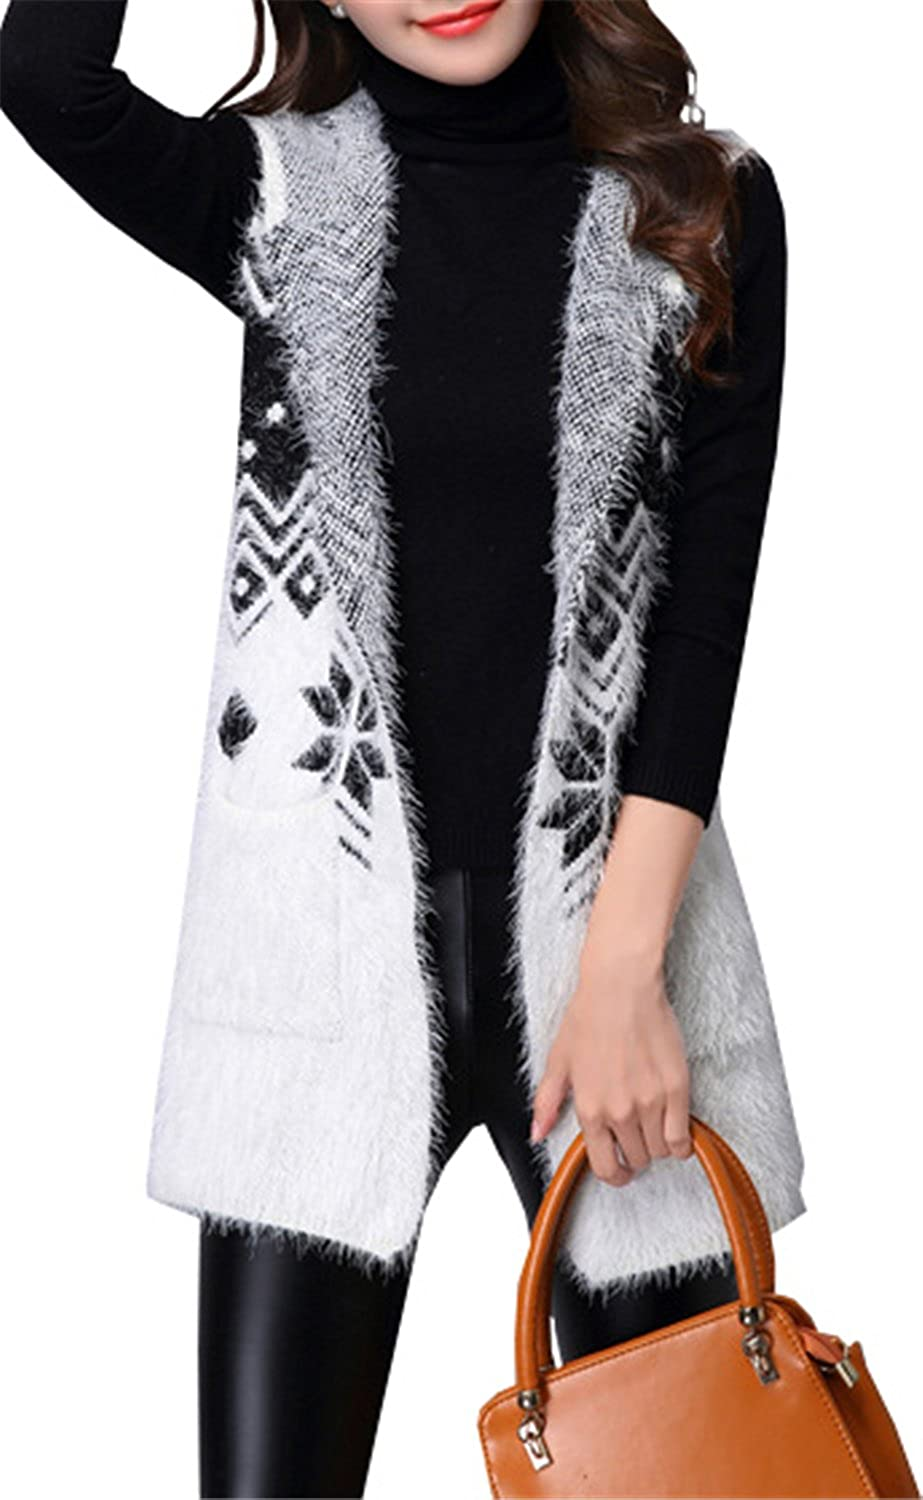 2105d5ae02 Betusline Women Deer Pattern Mohair Hooded Knit Vest Sleeveless Cardigan  Sweater White at Amazon Women s Clothing store